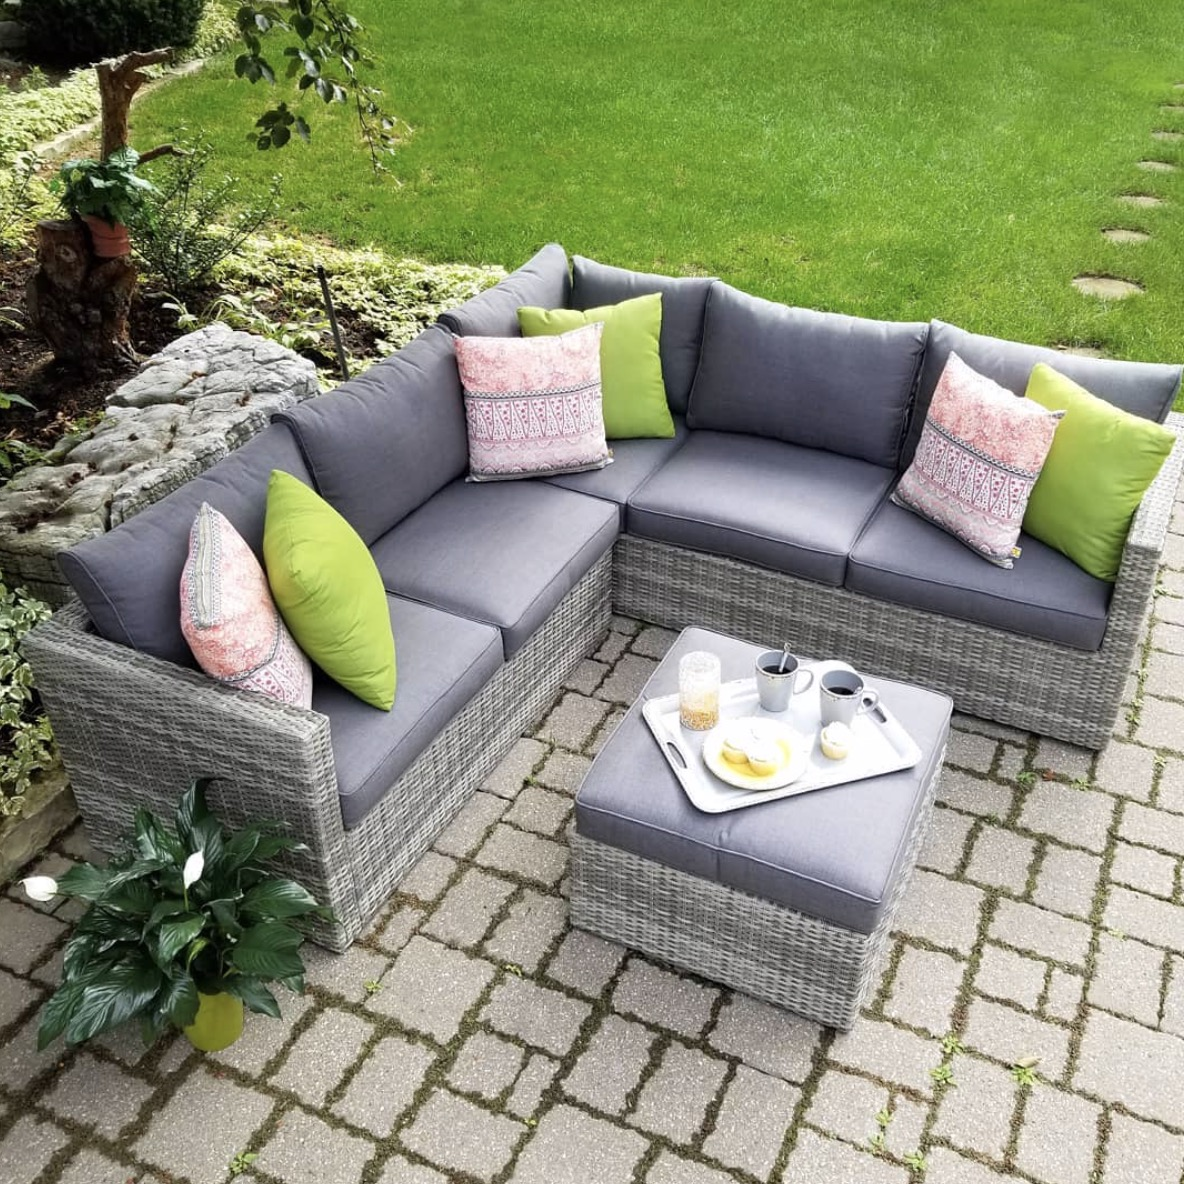 7 Stores To Shop Unique Patio Furniture In Toronto - Garden Furniture Clearance Warehouse